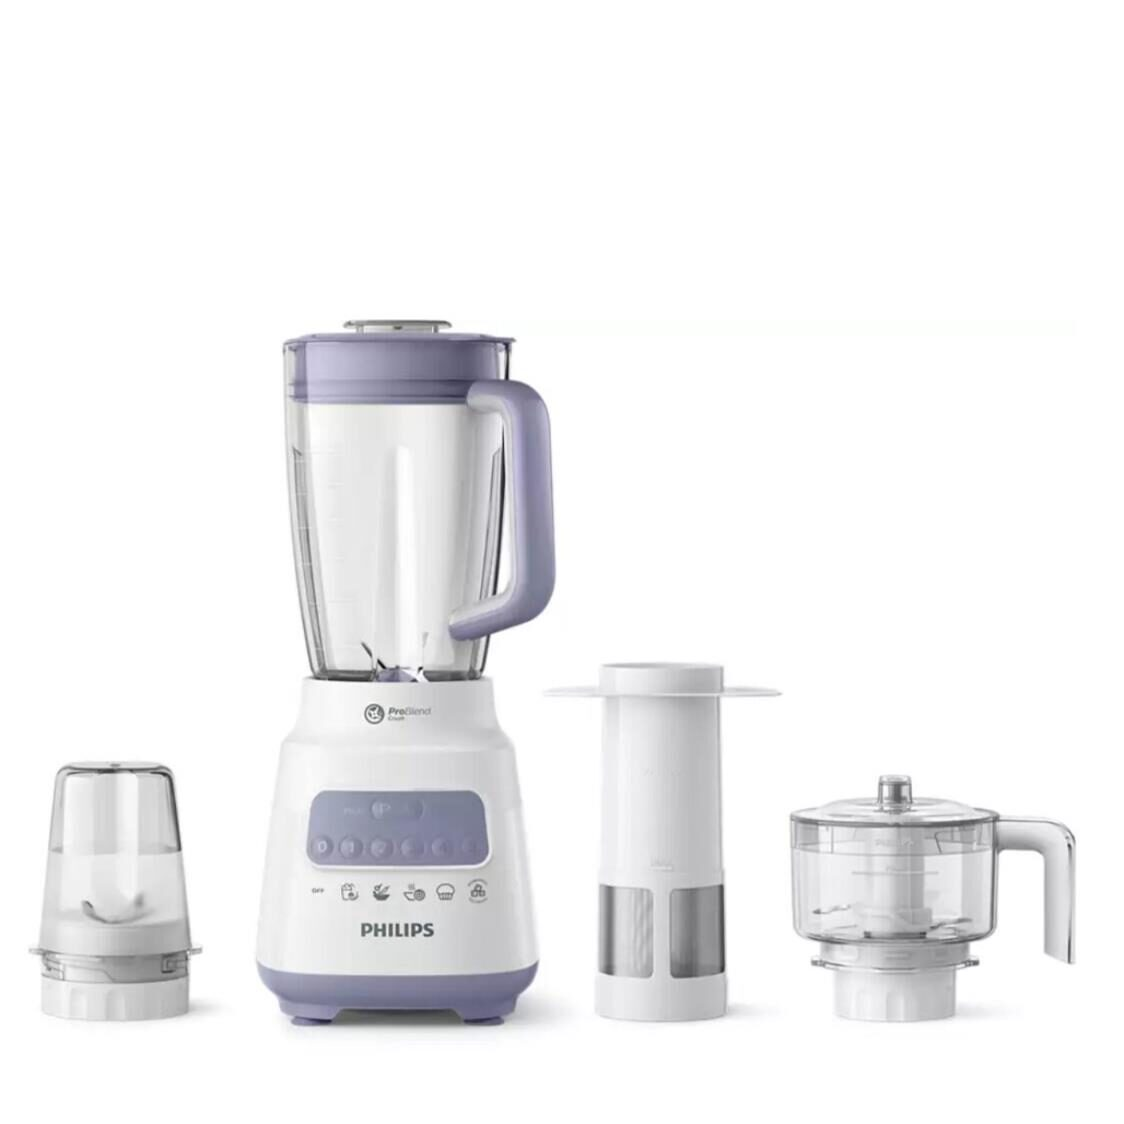 Philips 5000 Series 3-In-1 Blender Plastic Jar With Mill Chopper Filter HR222301